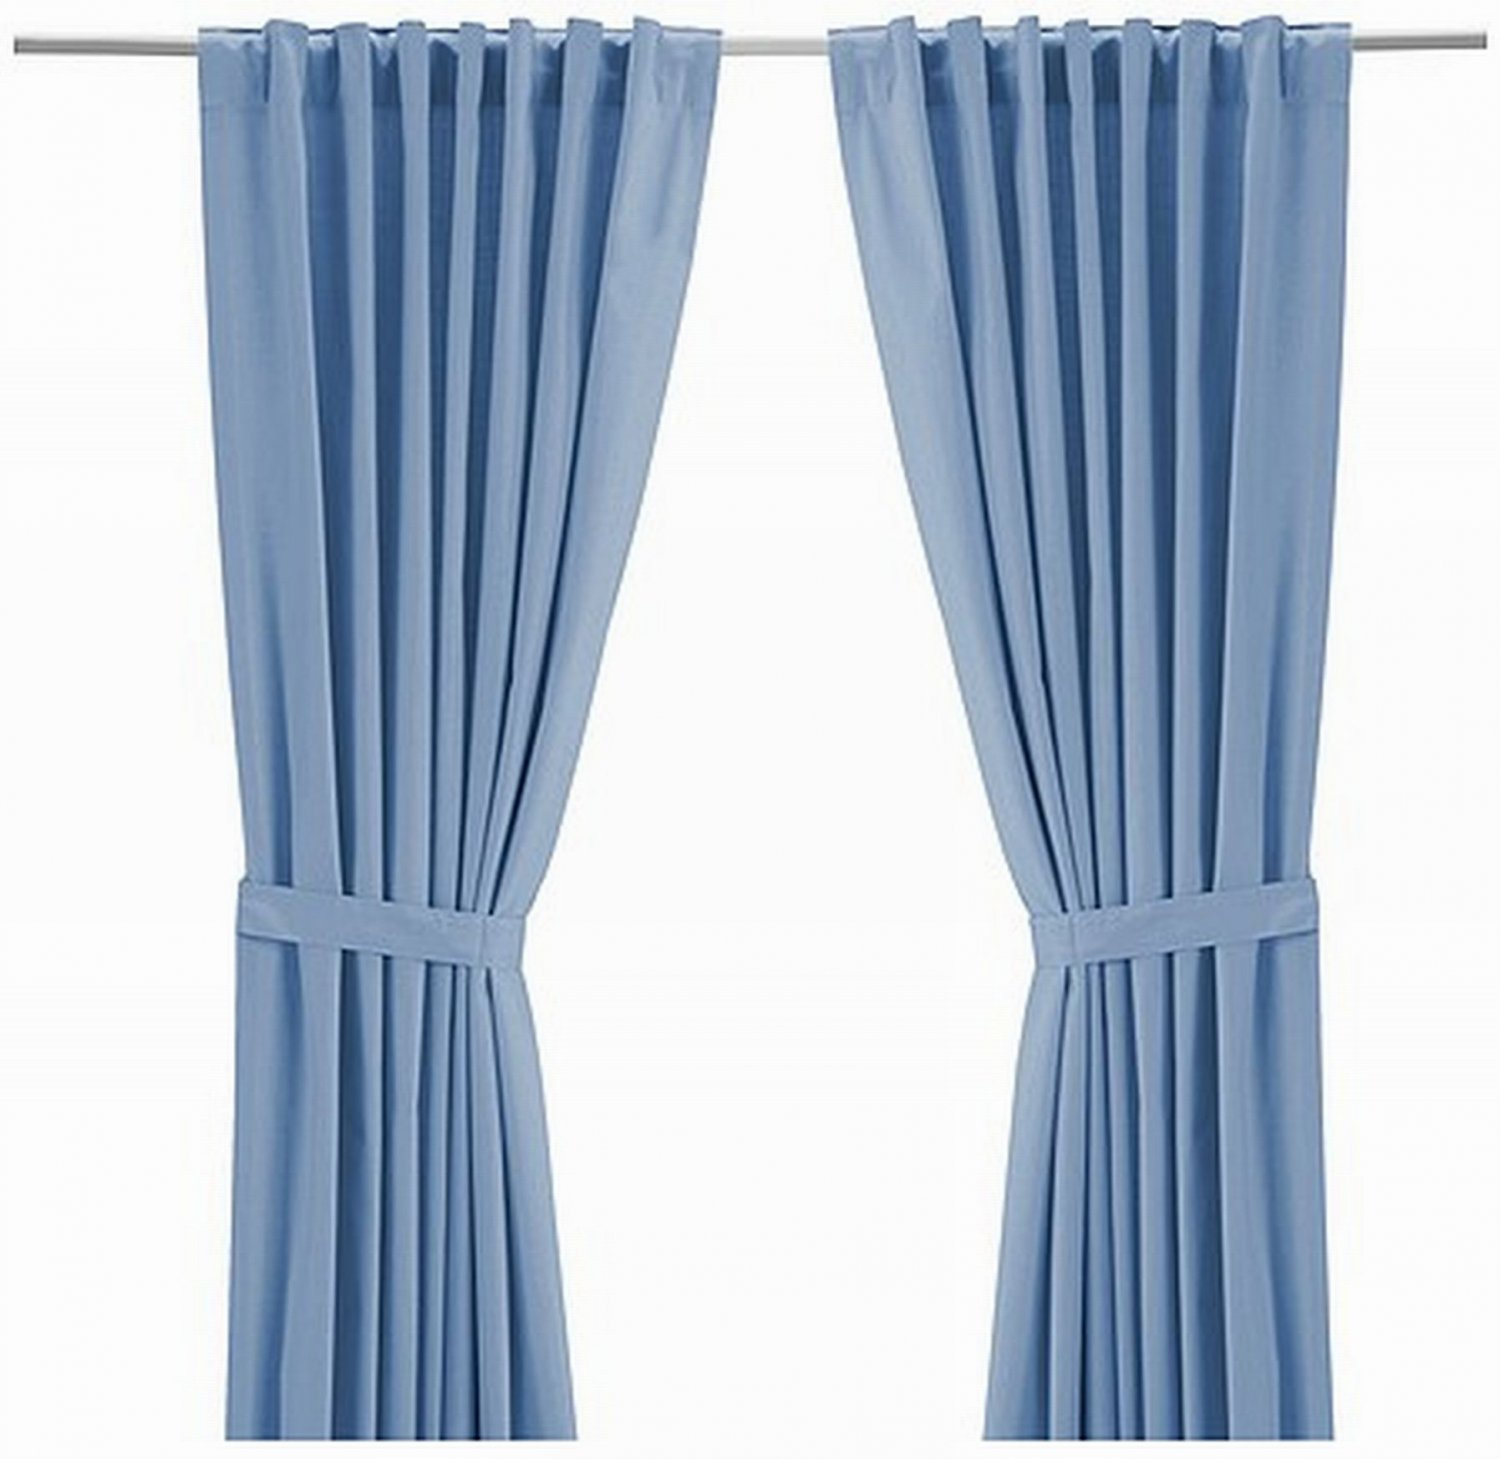 IKEA RITVA LIGHT BLUE CURTAINS Drapes HEAVY COTTON 98""